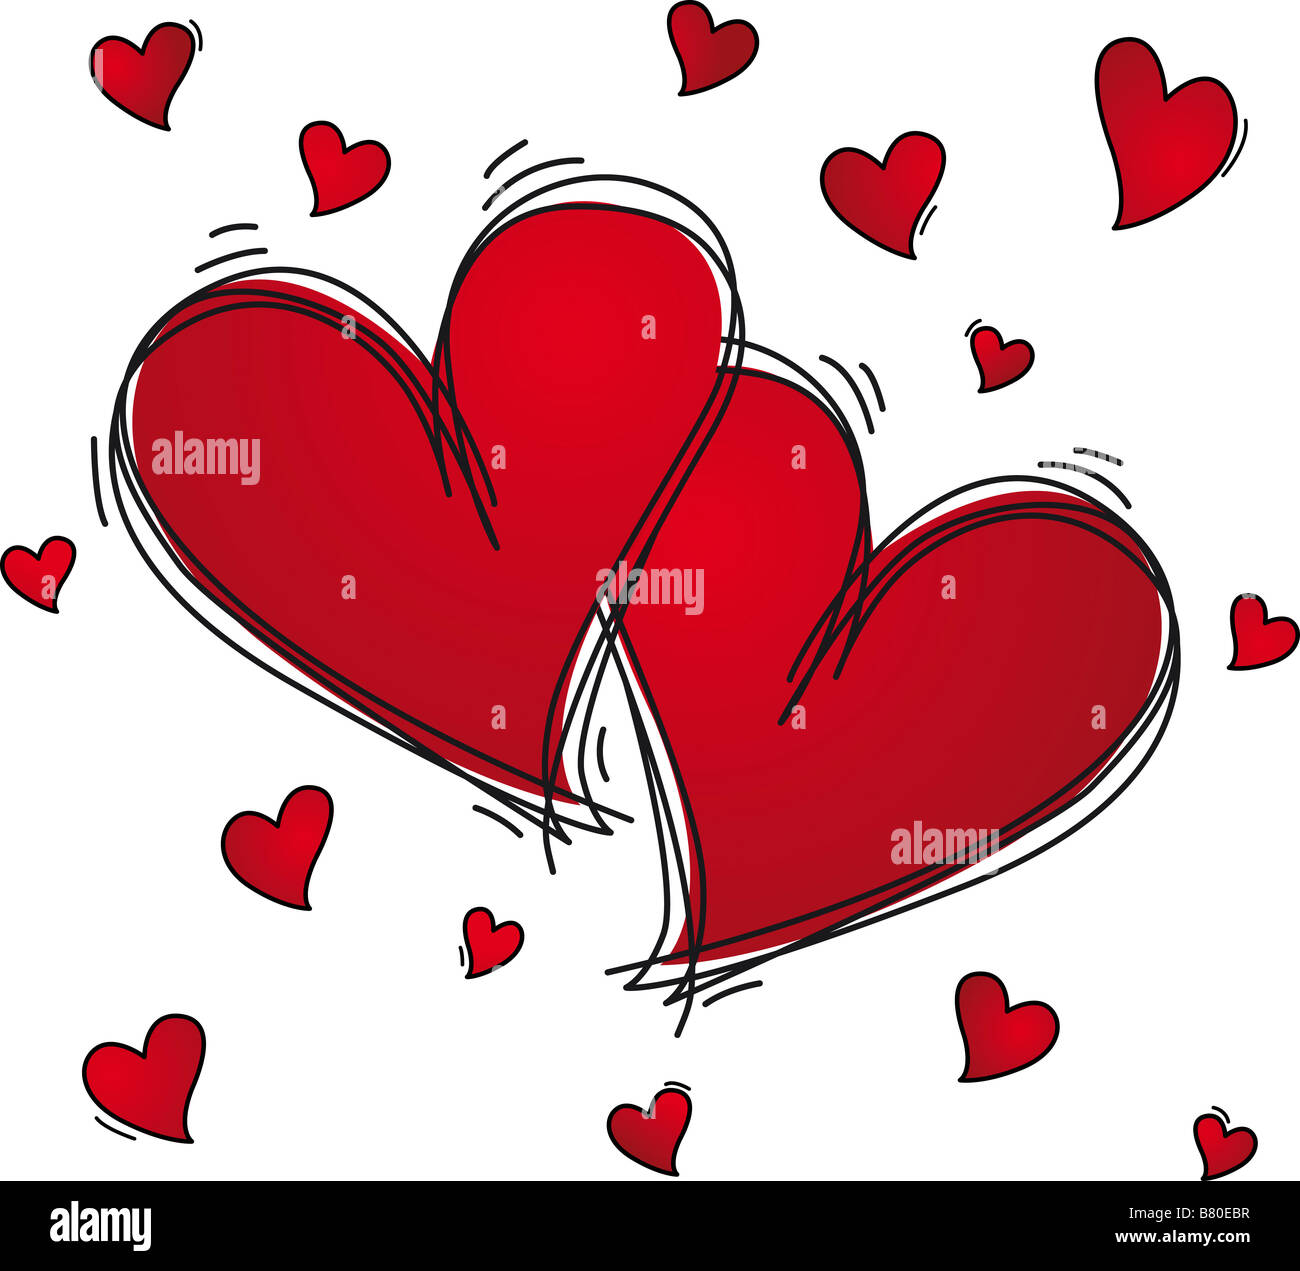 Two hearts sketched - Stock Image